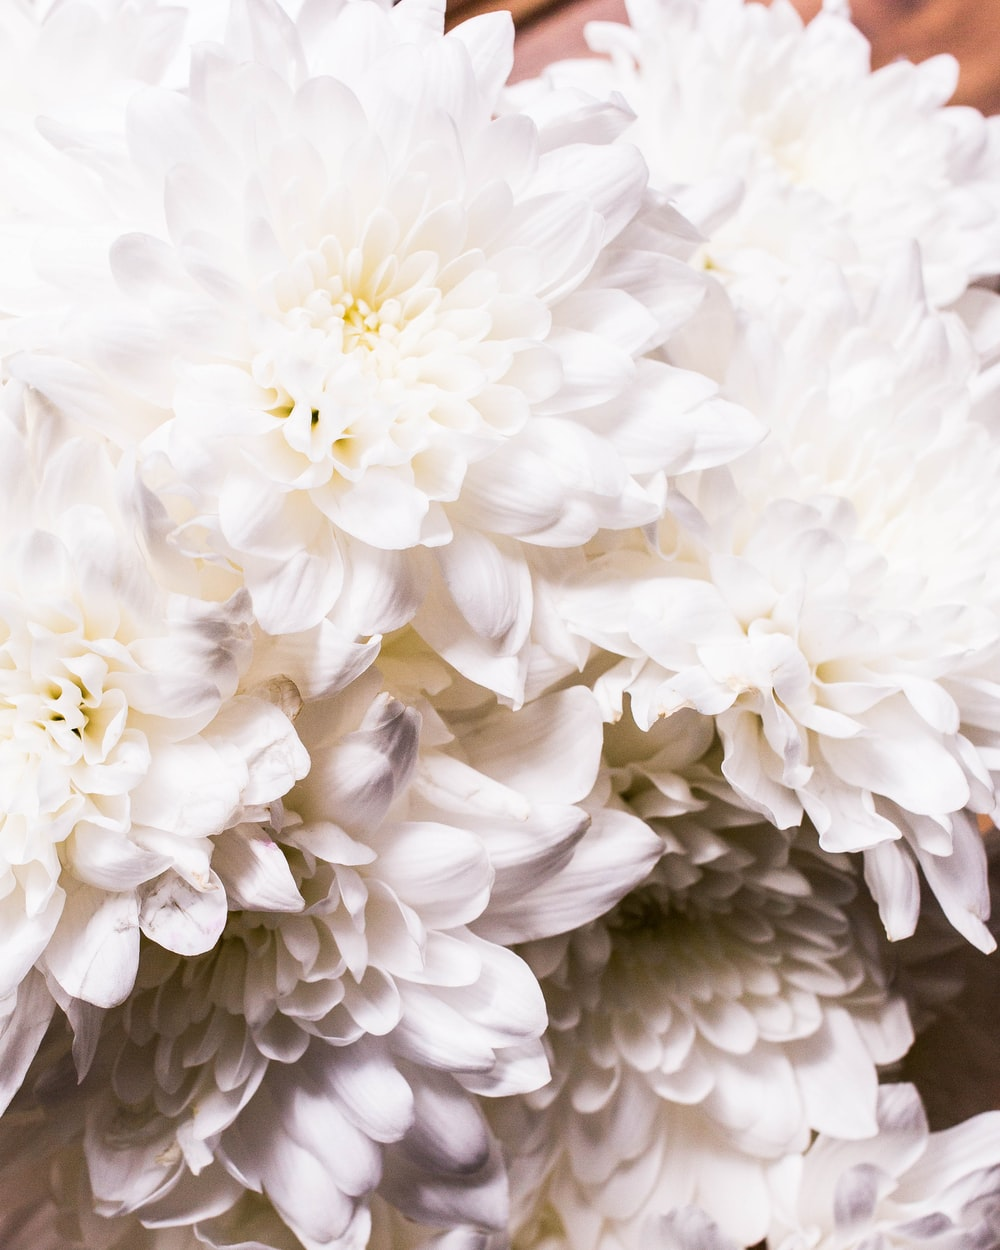 Chrysanthemum Beauty Petal And White Flower Hd Photo By Charisse